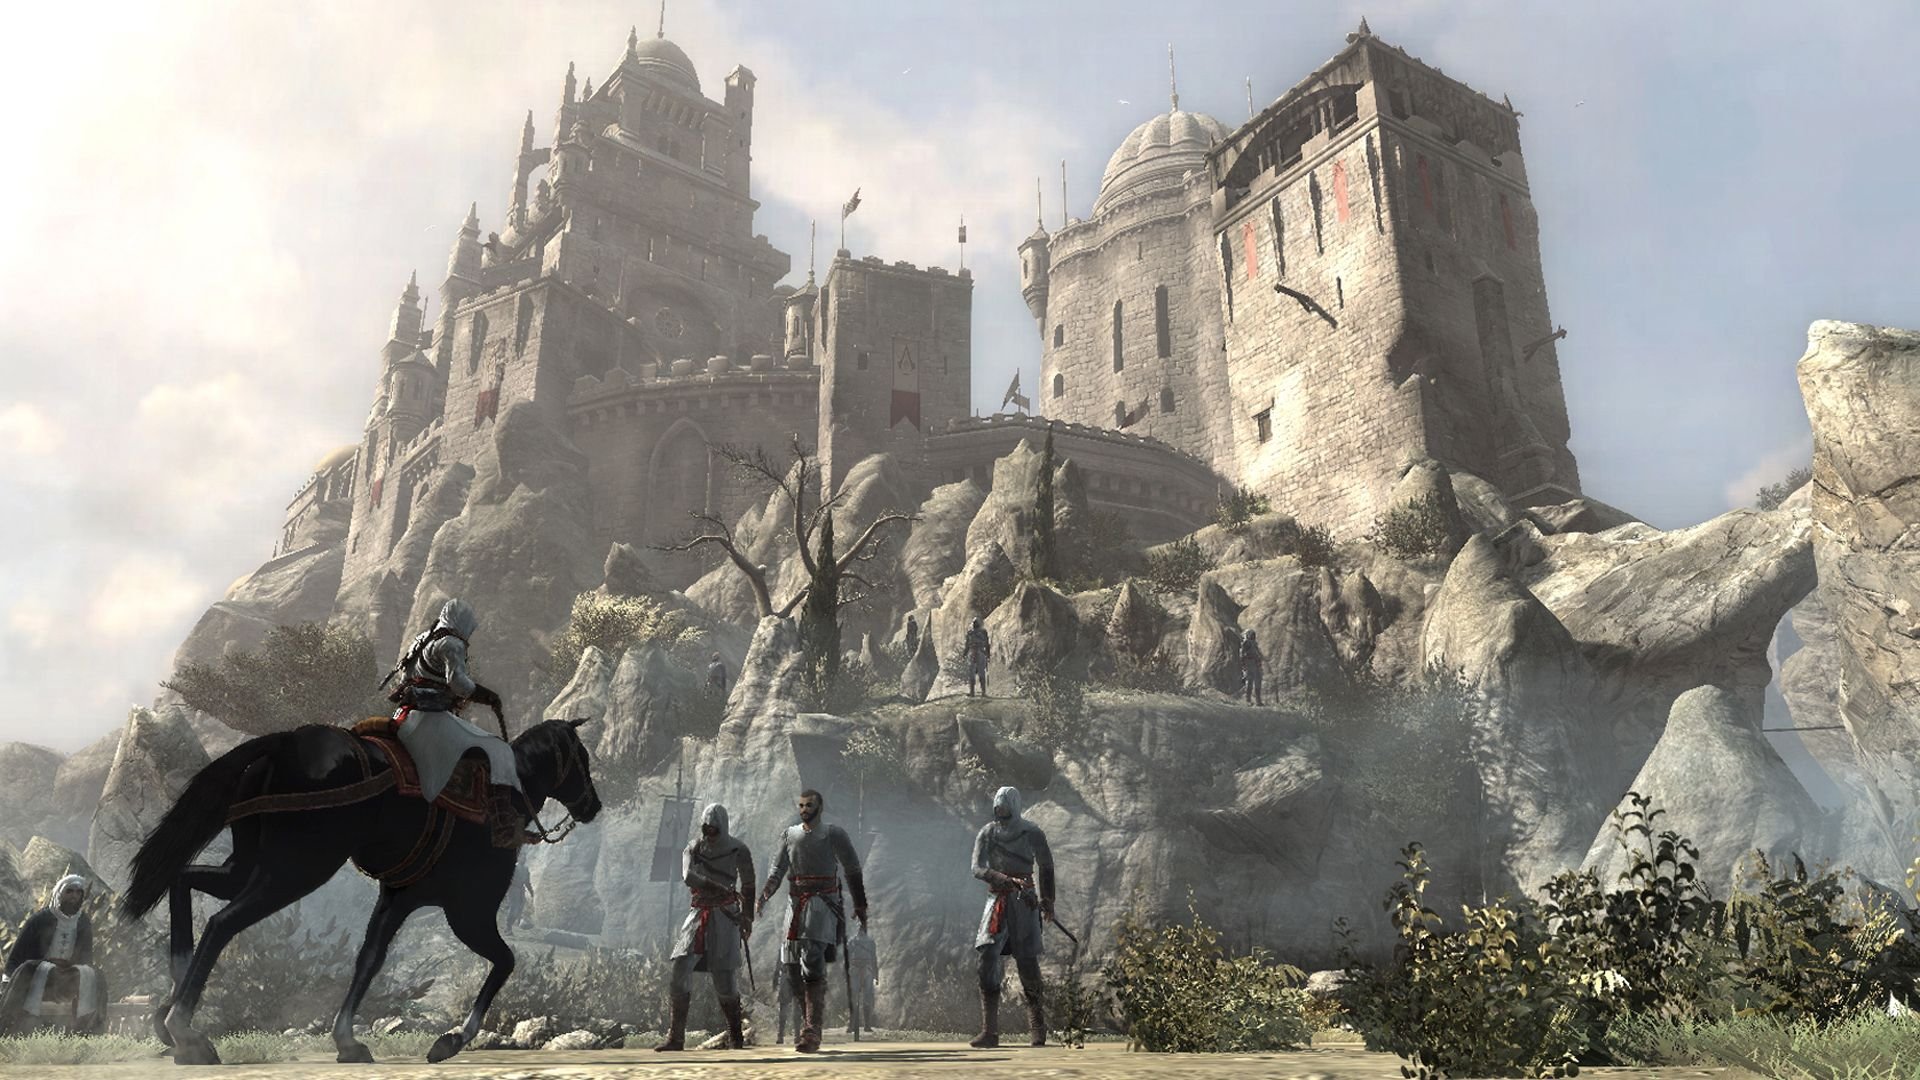 Must see Wallpaper Horse Assassin'S Creed - 7d208a26880a65aff0e4e6a5d2db4440  Graphic_289864.jpg